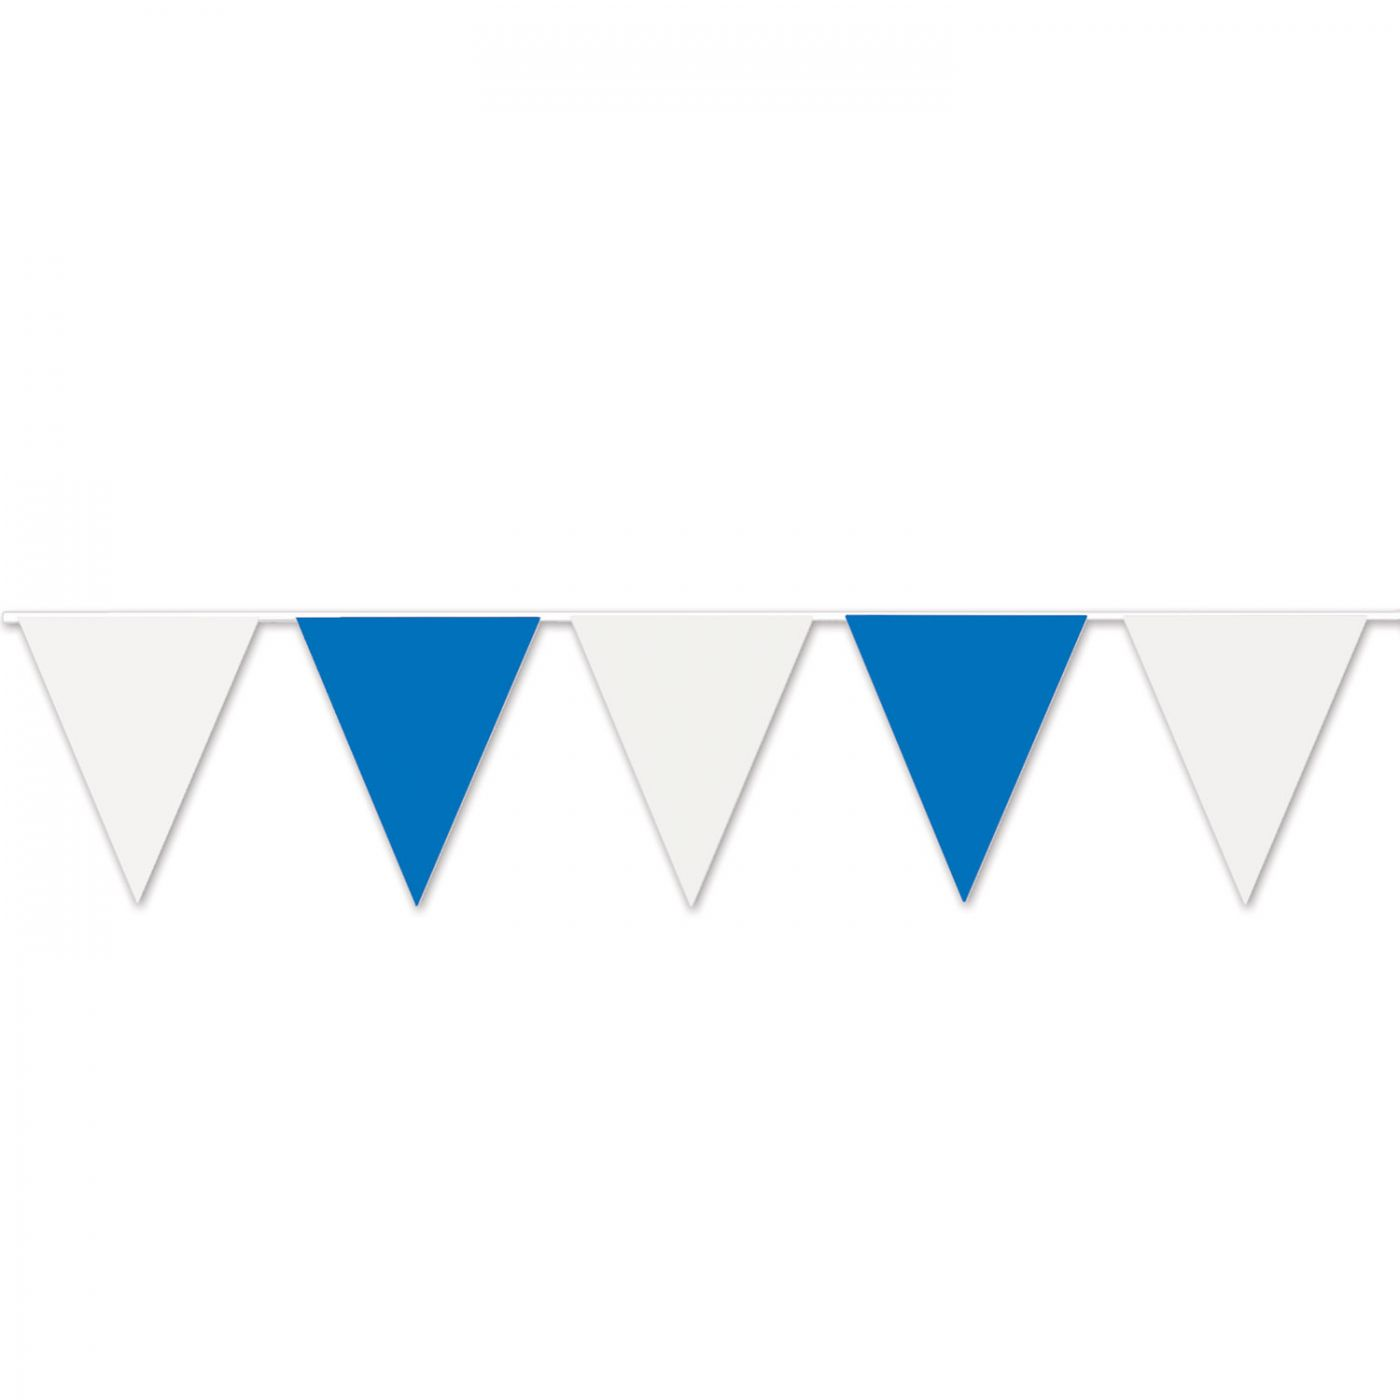 Image of Blue & White Pennant Banner